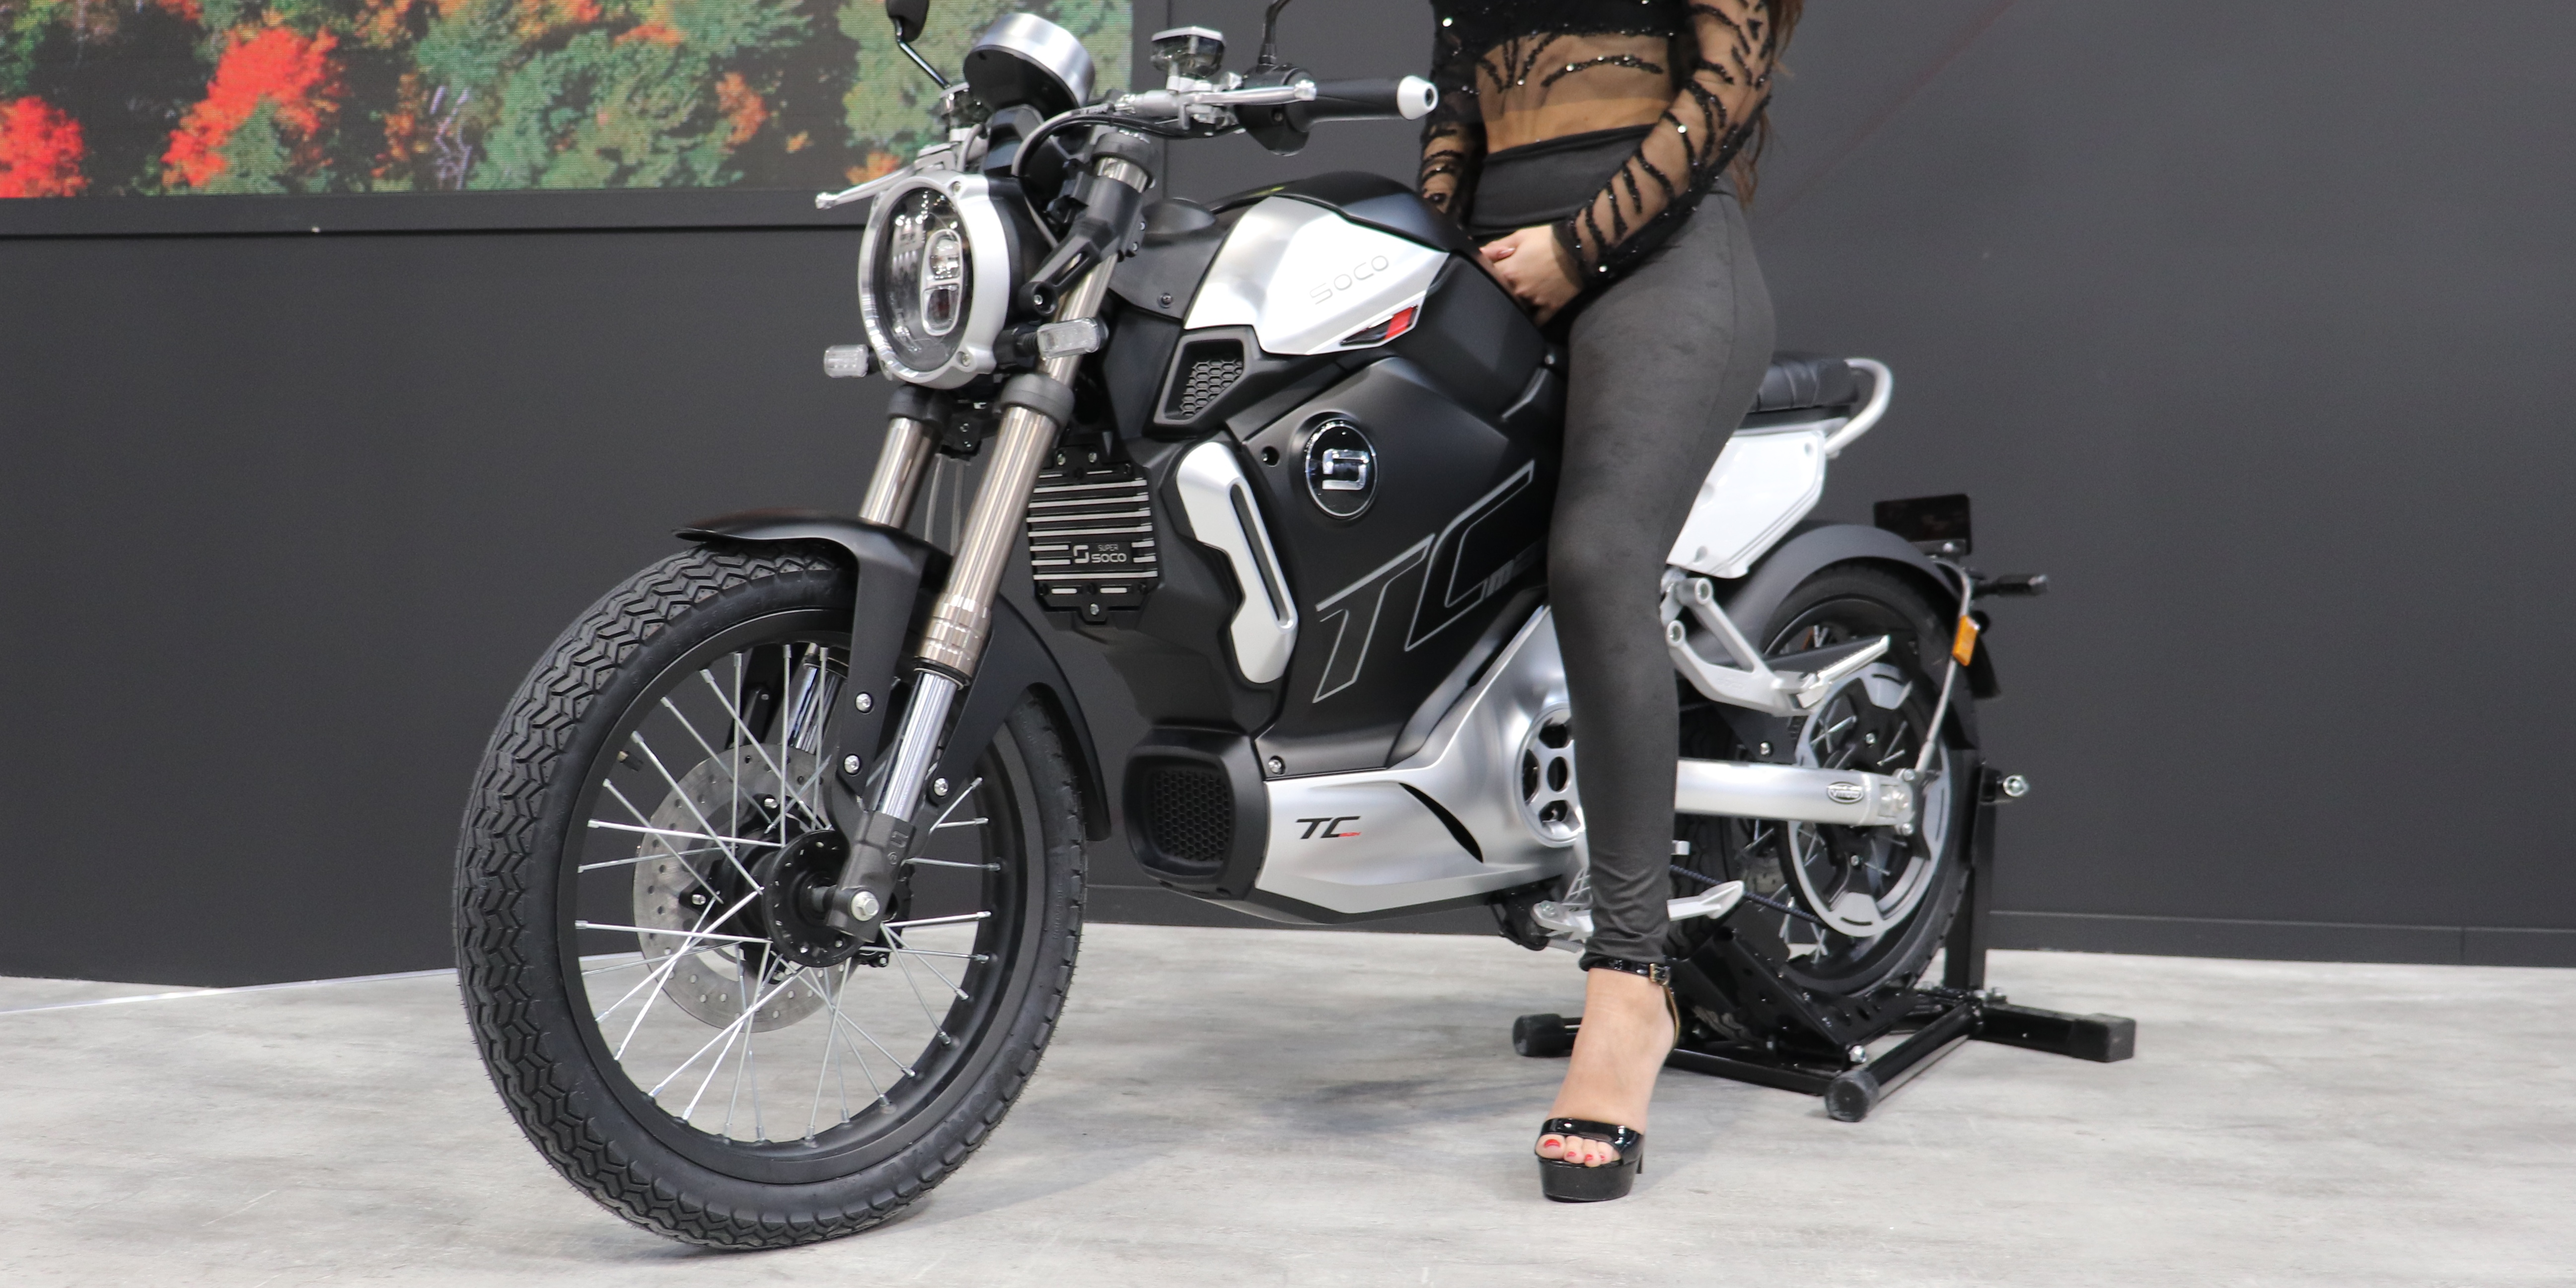 Electric Motorcycles coming out in 2019: Here are all the